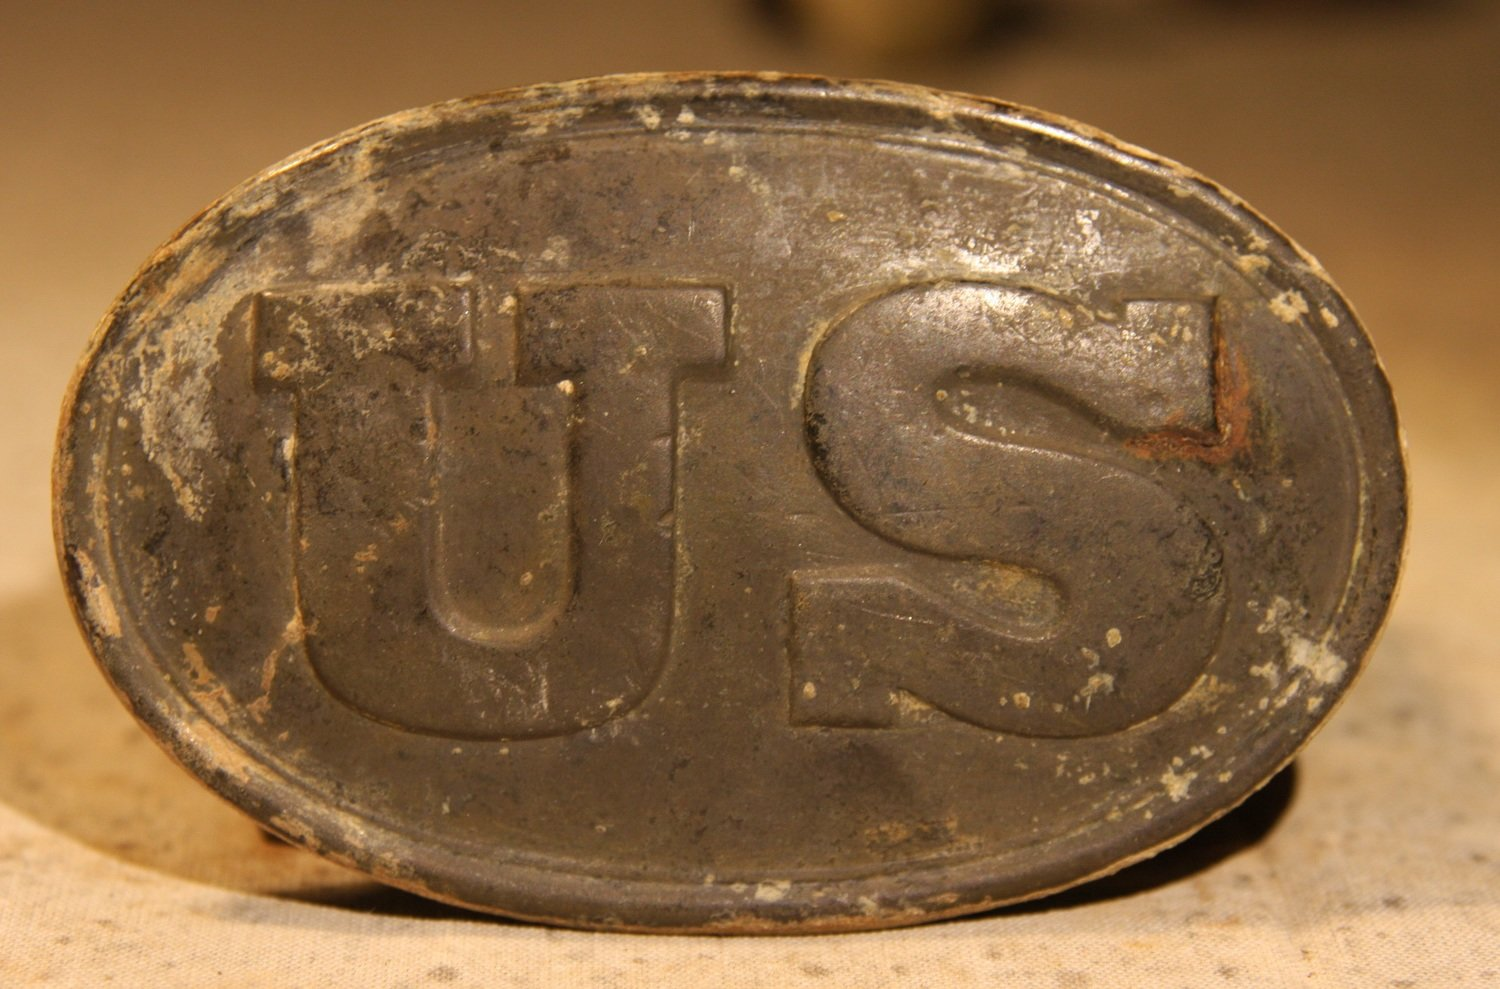 JUST ADDED ON 12/5 - GETTYSBURG - DEVIL'S DEN AREA - ROSENSTEEL FAMILY - Very Nice U.S. Box Plate with One Hook